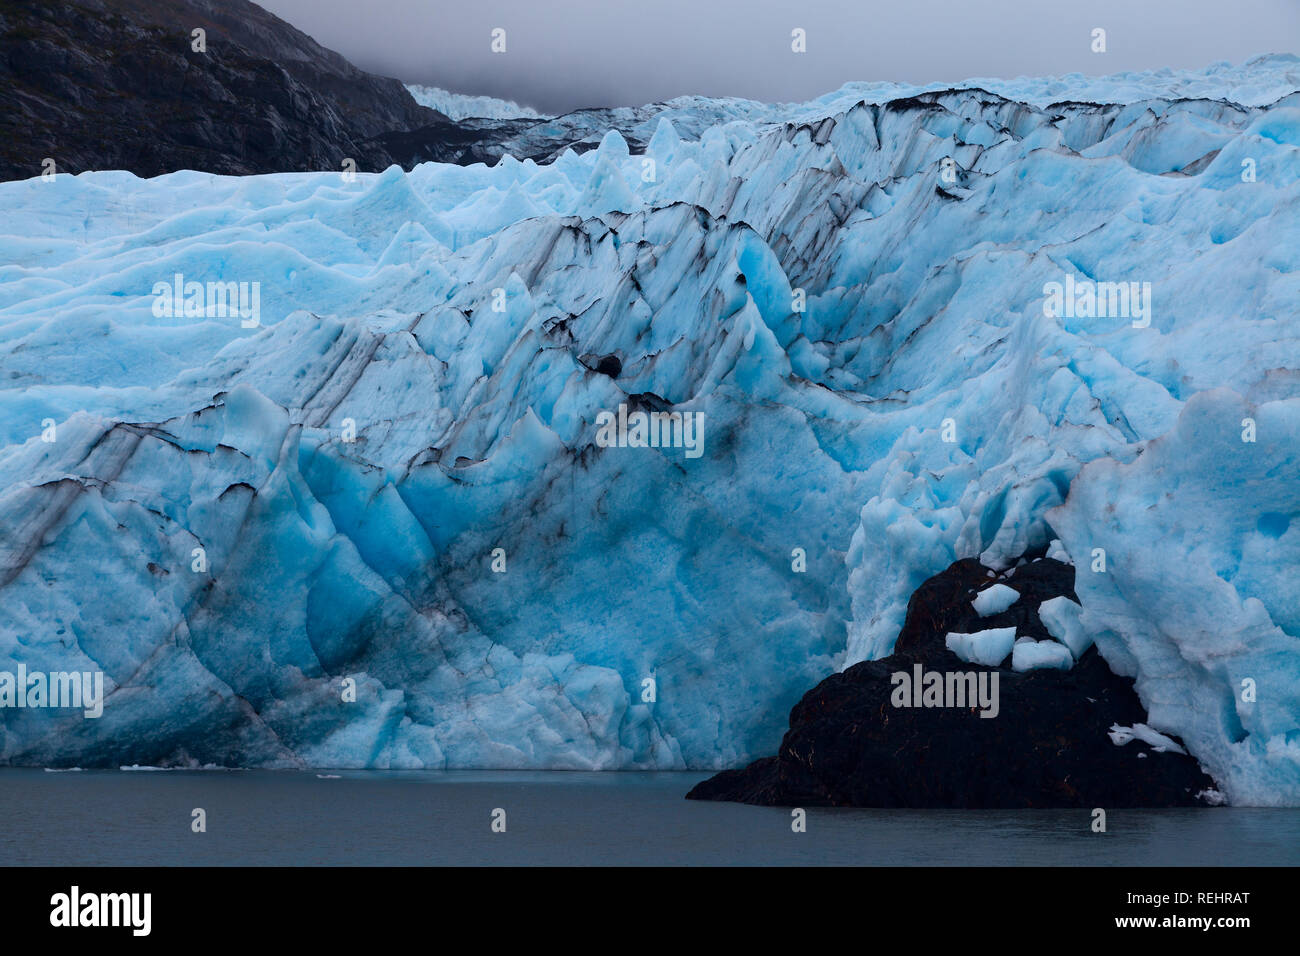 Pinnacles of blue ice march towards the water. Portage Glacier, Alaska - Stock Image